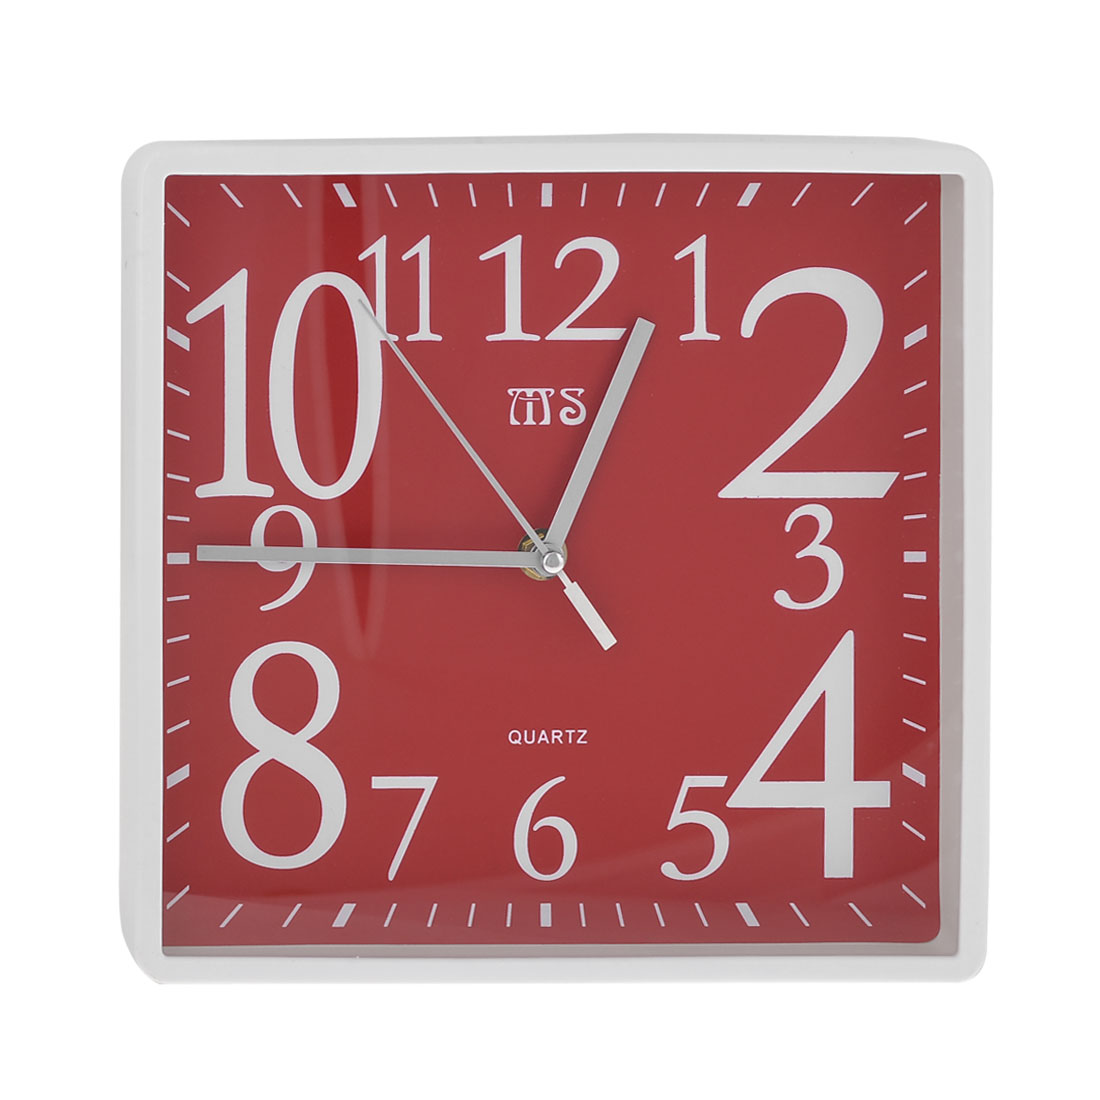 Red White Plastic Square Shell Analog Wall Alarm Clock for Bedroom